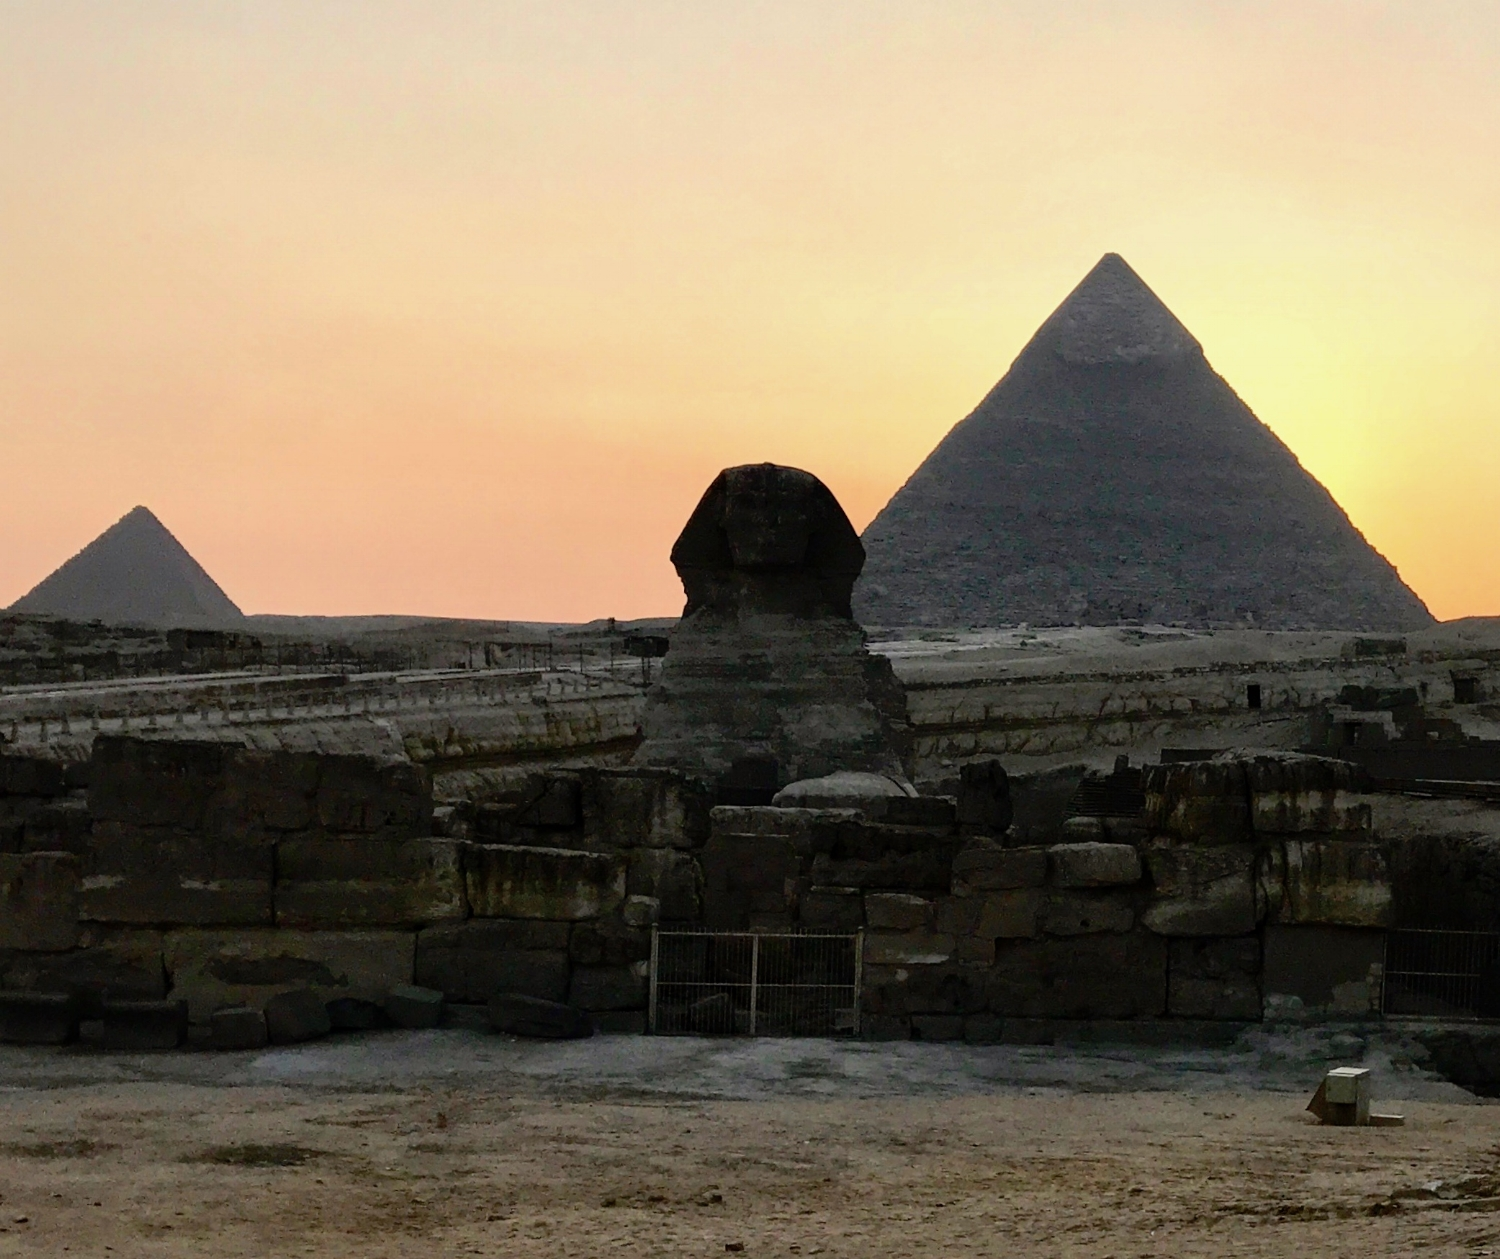 Sphinx and Pyramid of Khafre at sunset